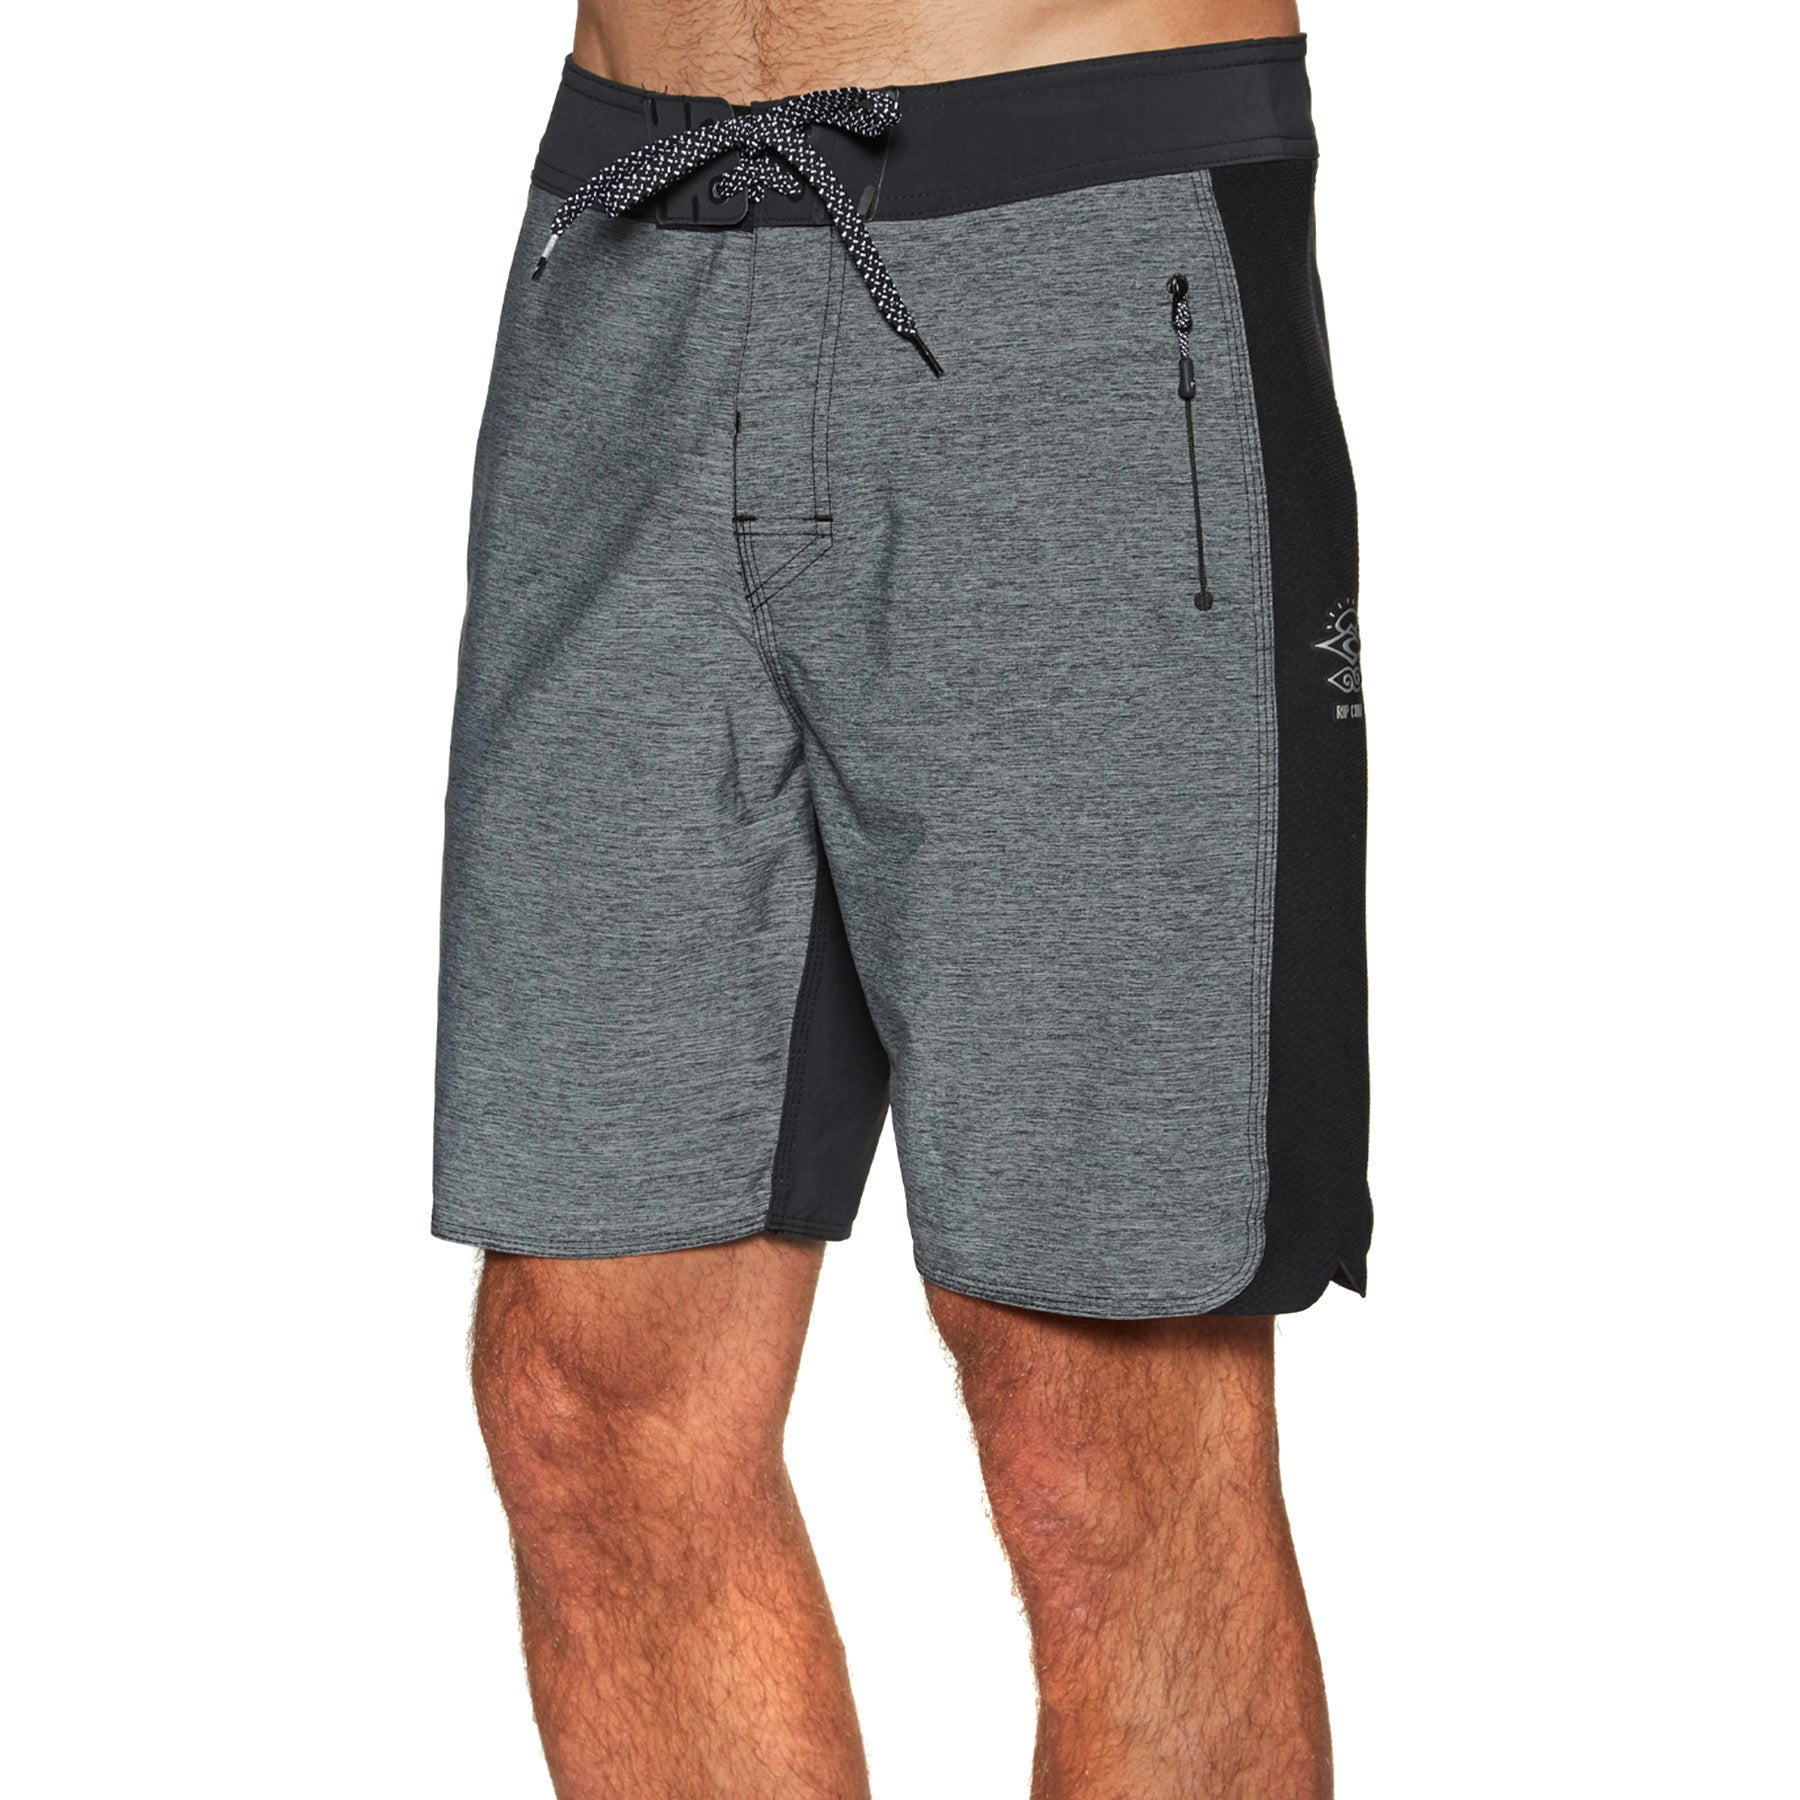 Rip Curl Mirage 3 2 1 Ultimate 19'in Boardshorts - Black